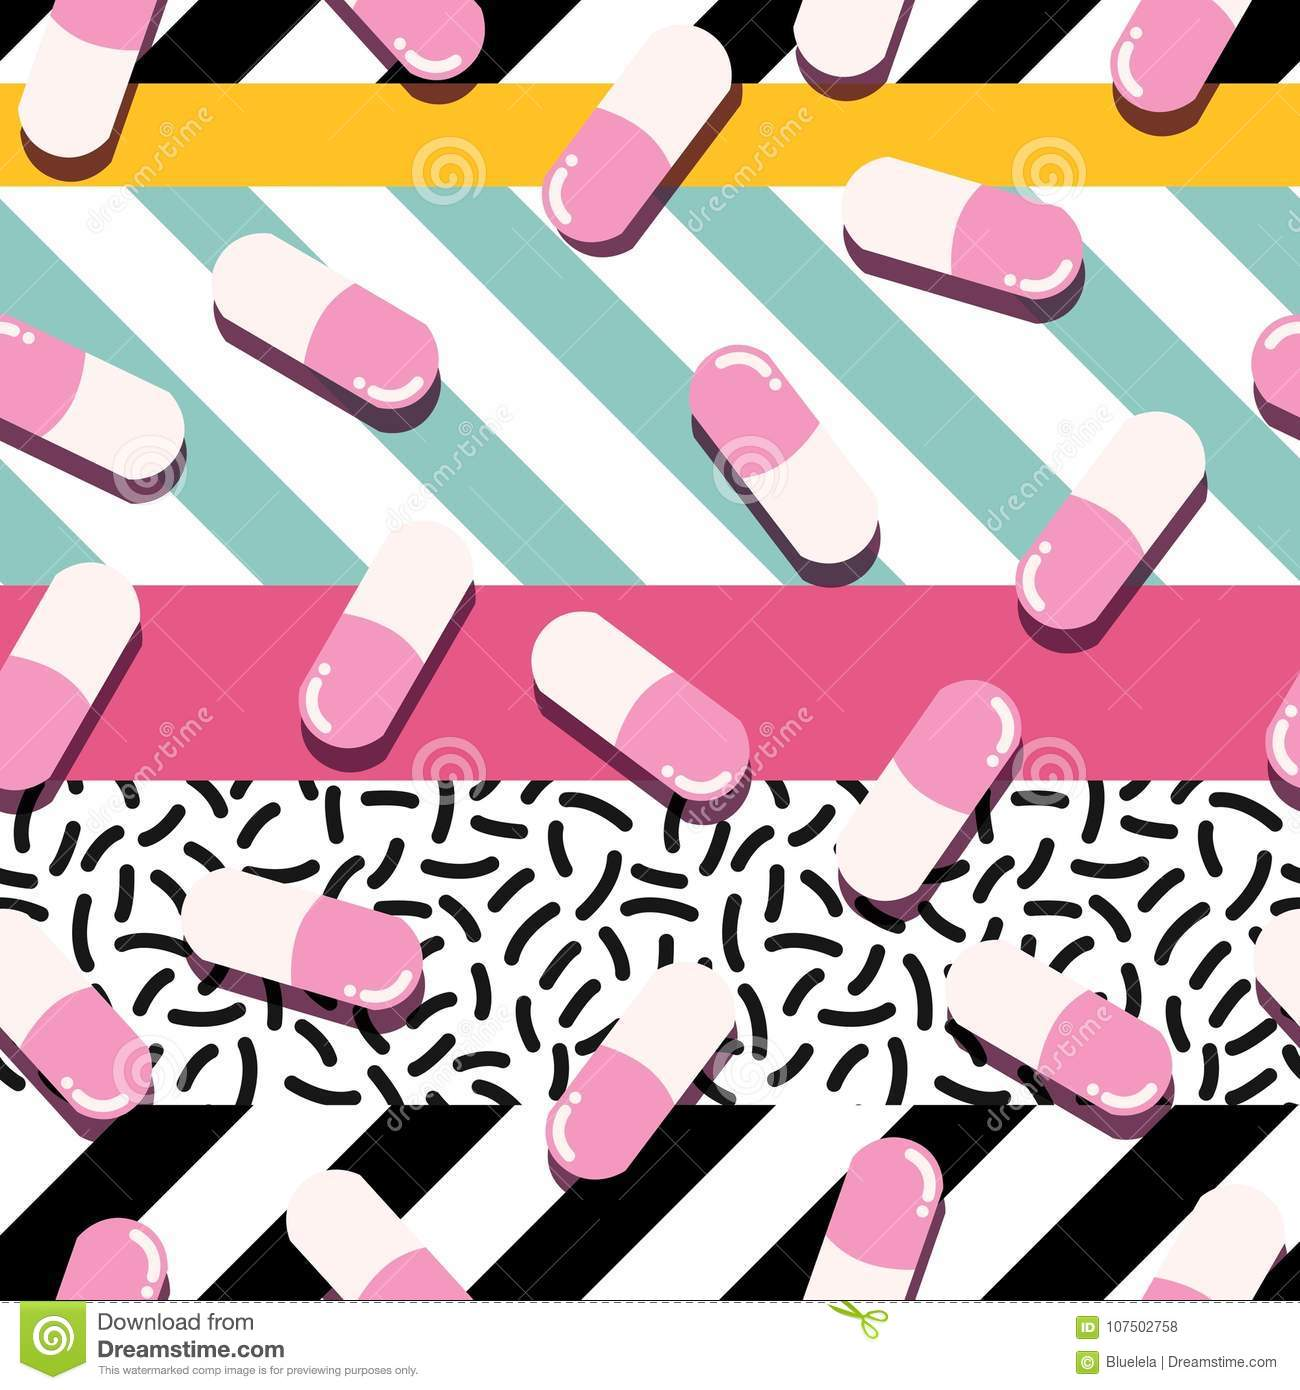 ce28abcb893 Pills And Capsules Seamless Pattern